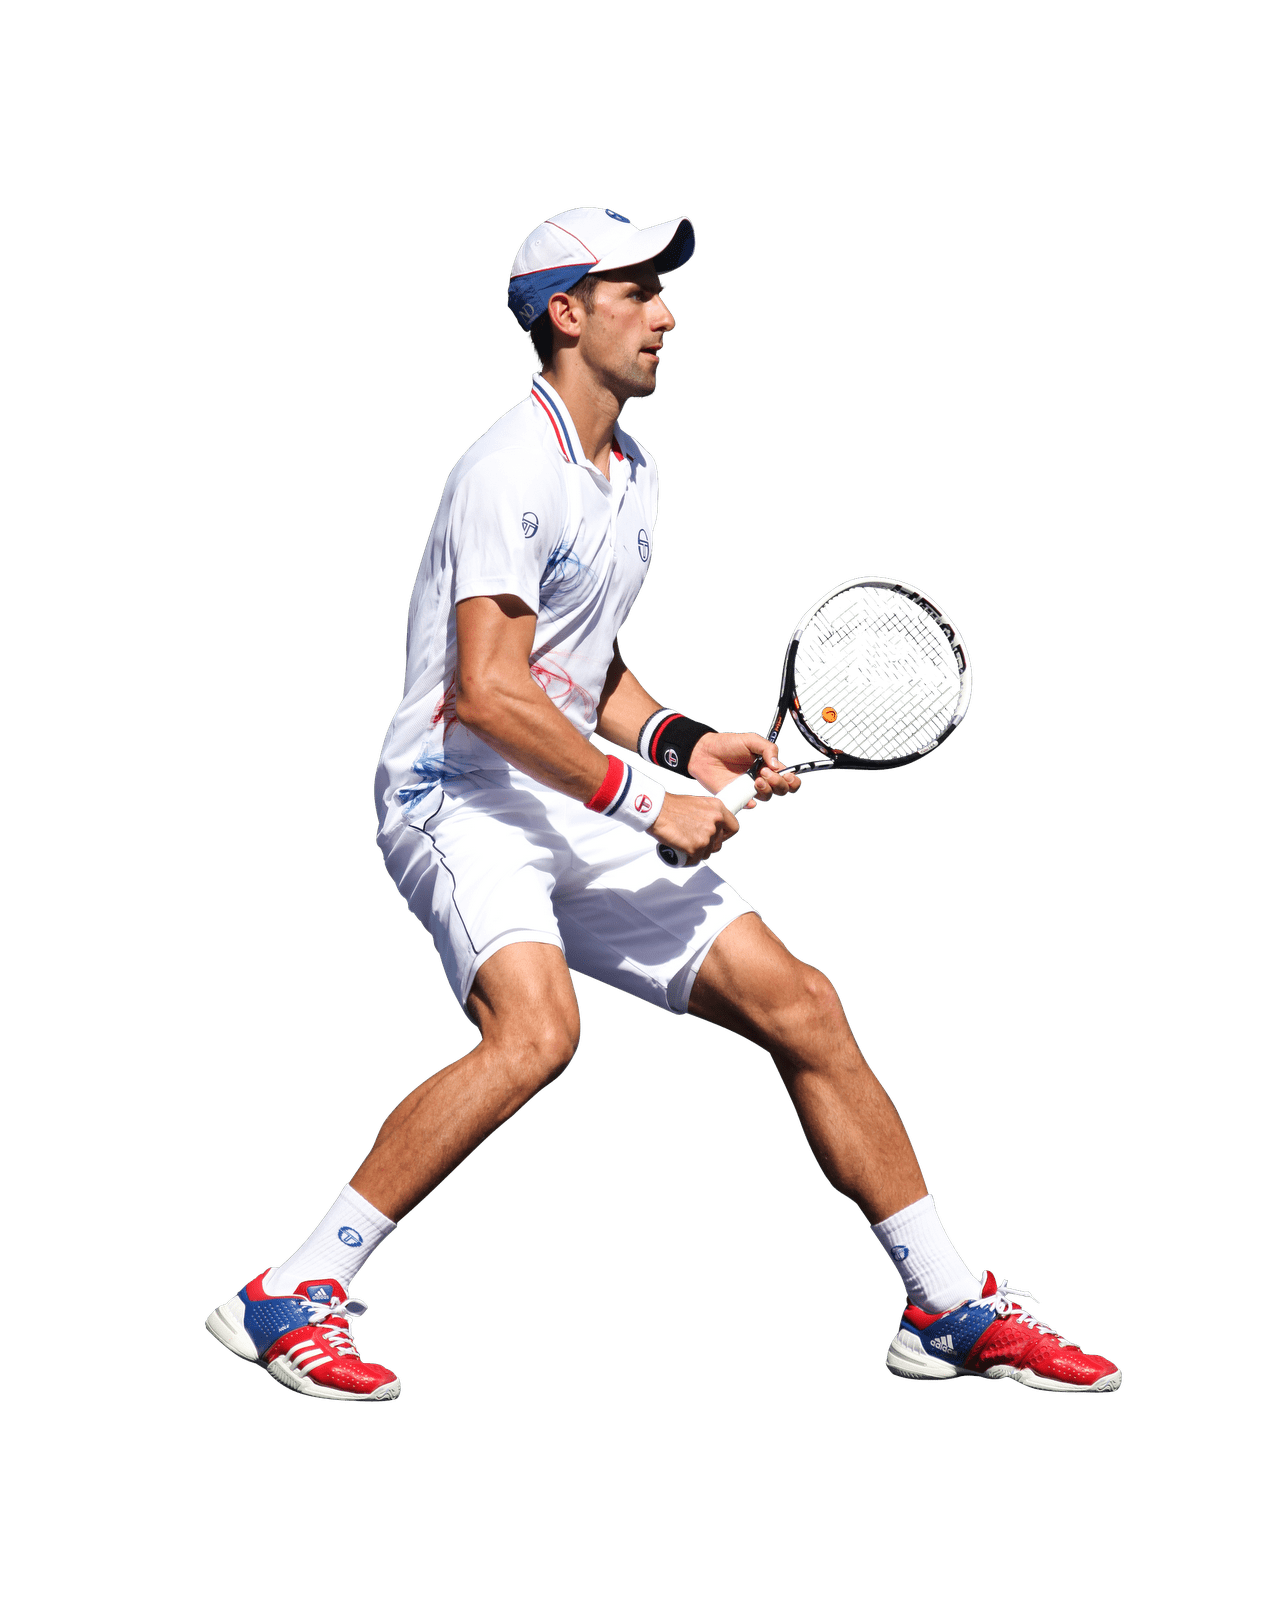 Download · celebrities · sports celebrities · novak djokovic